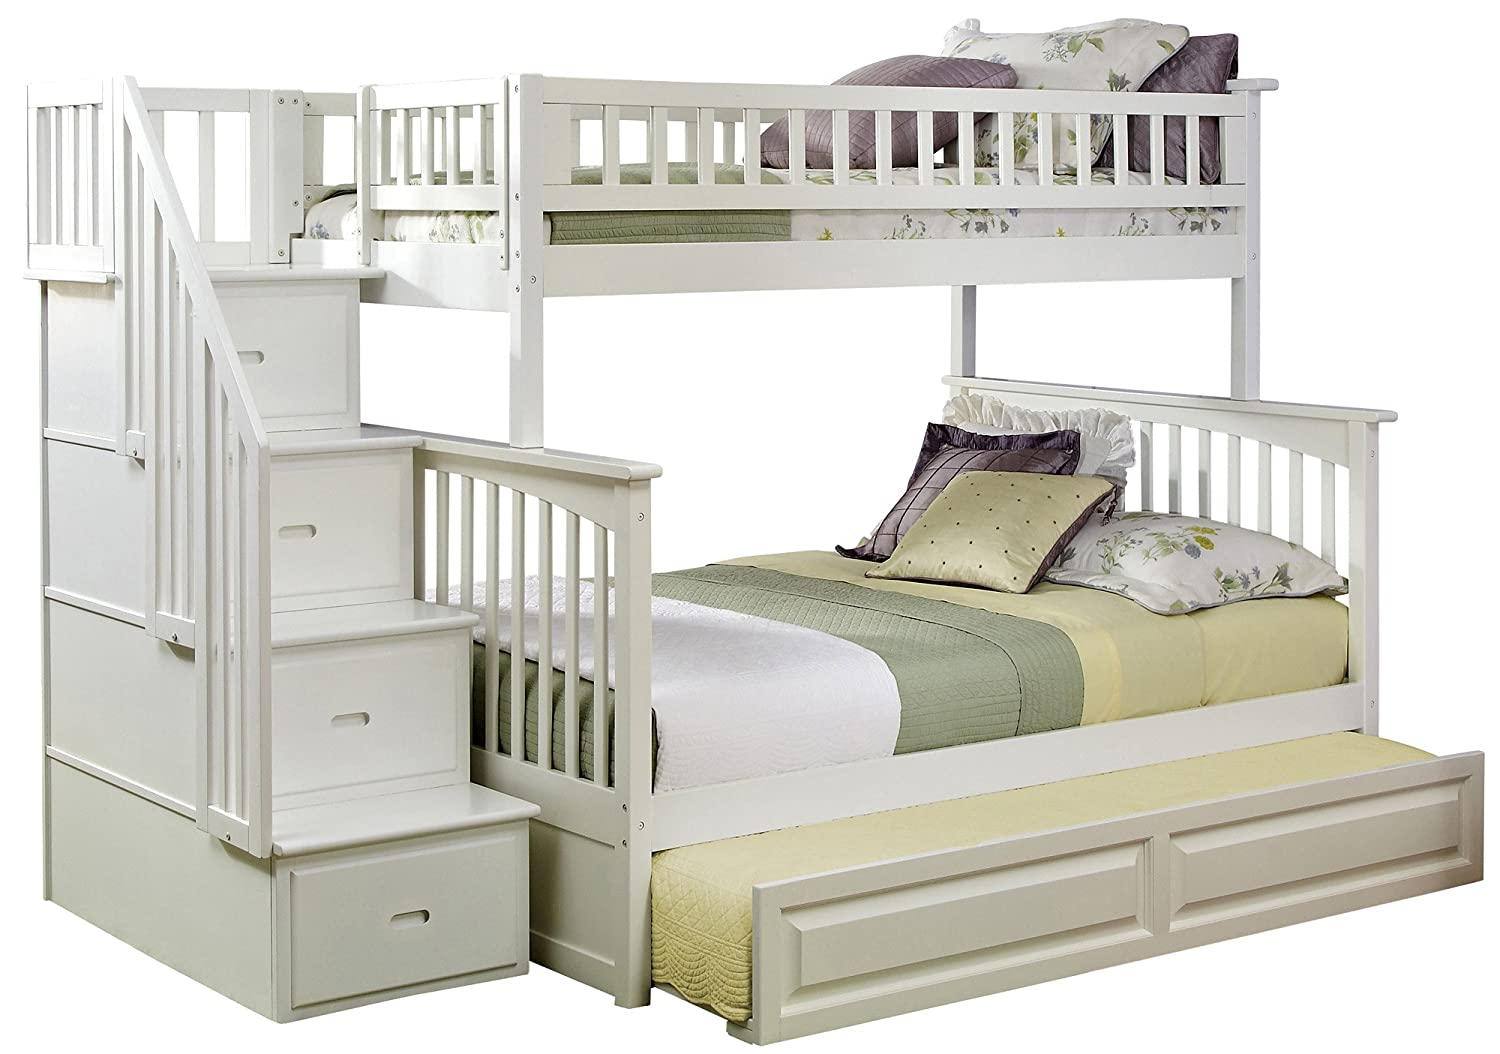 over twin bed full baby wildon with walter home reviews bunk wayfair pdx drawers beds kids